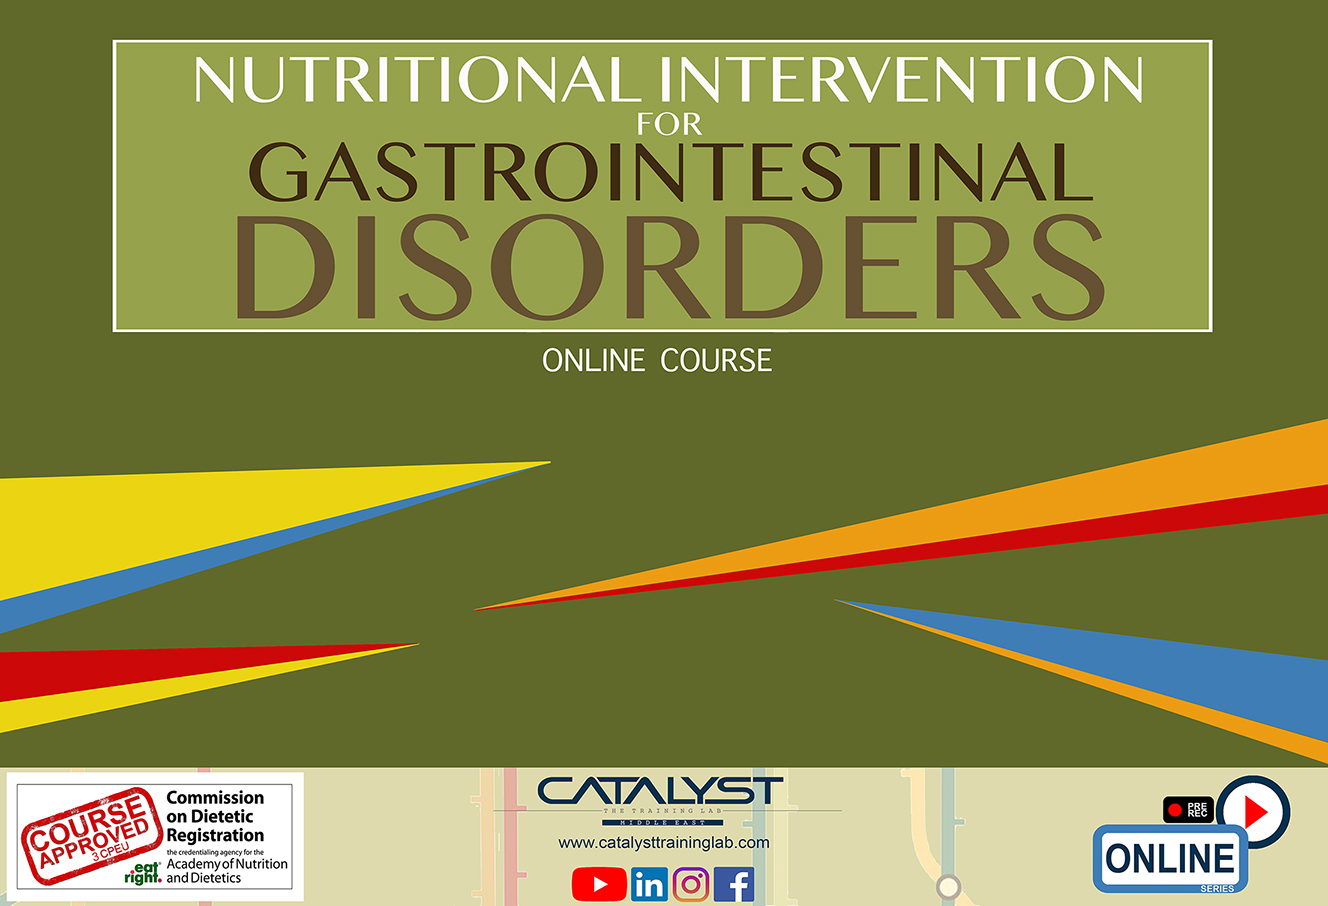 Nutritional Intervention for Gastrointestinal Disorders